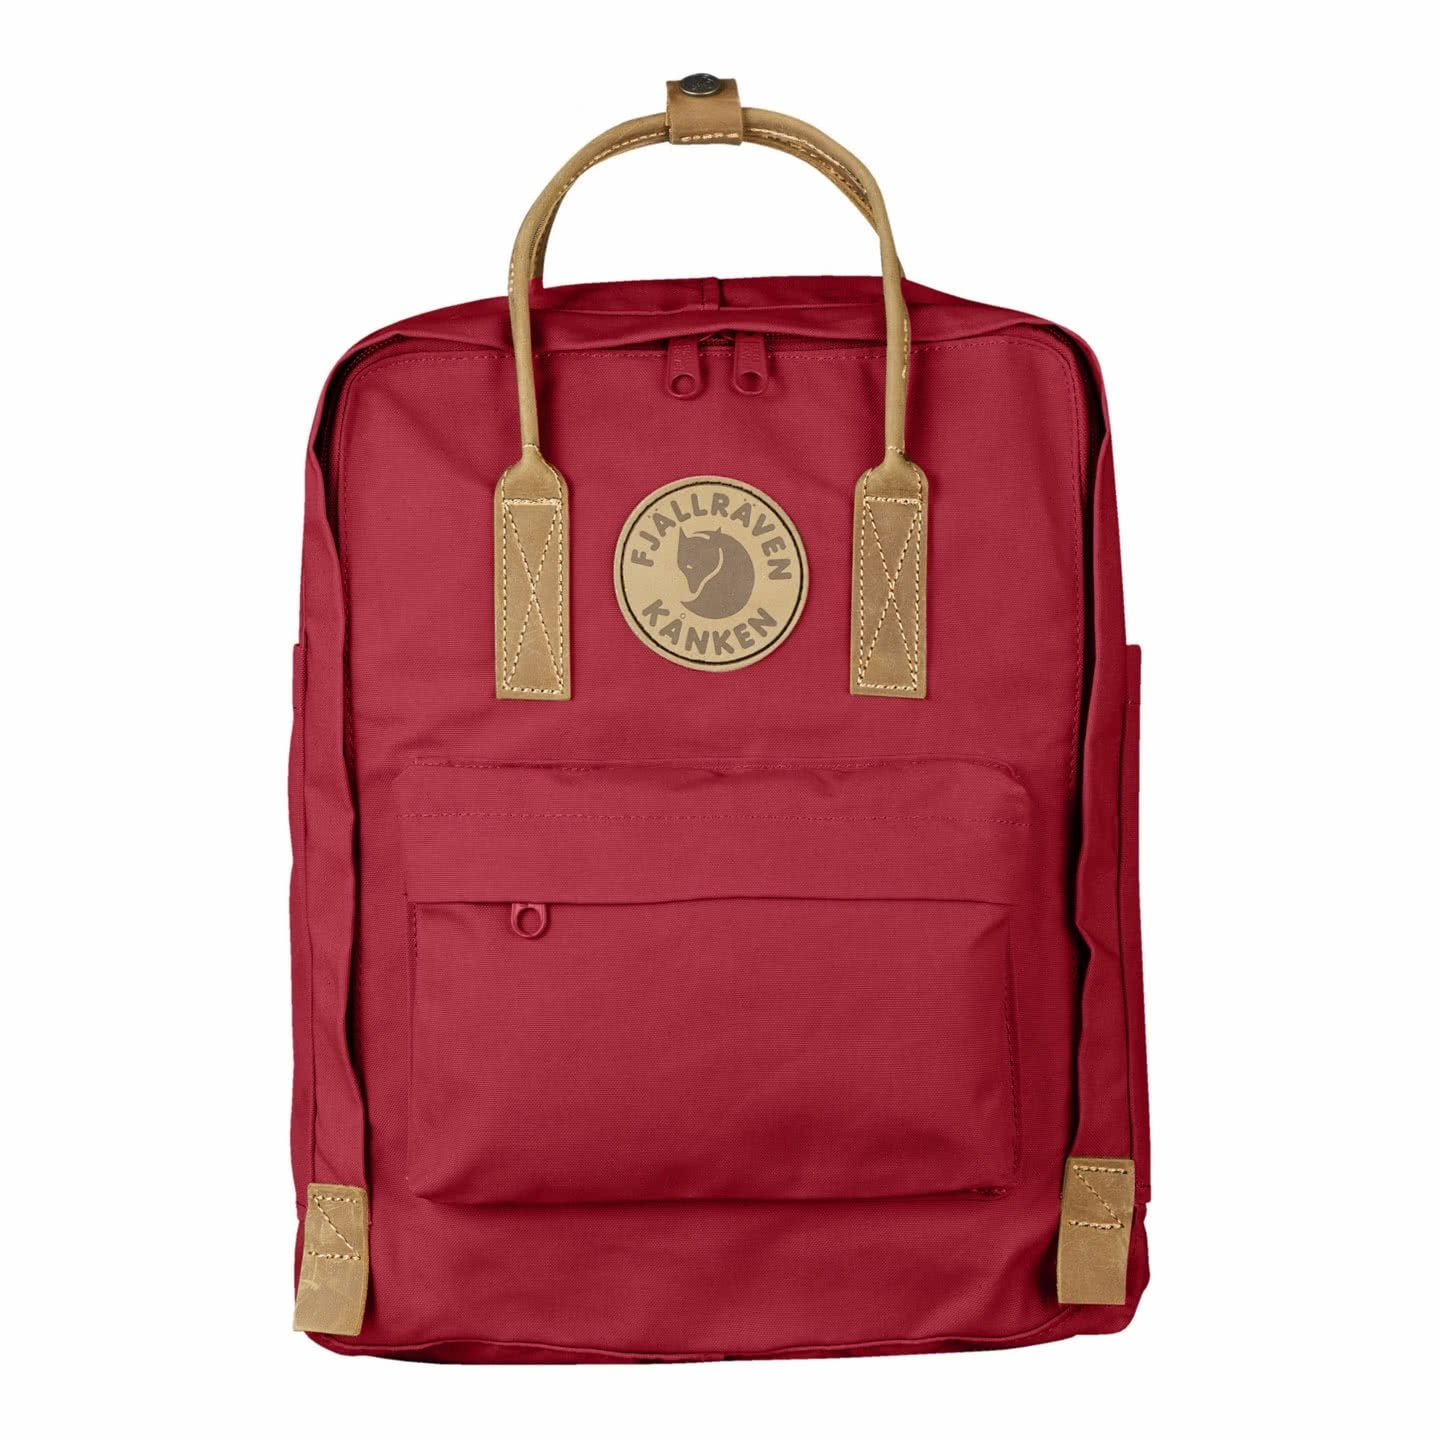 Fjallraven Kanken No.2 Backpack - Deep Red - Find Your Feet Australia Hobart Launceston Tasmania